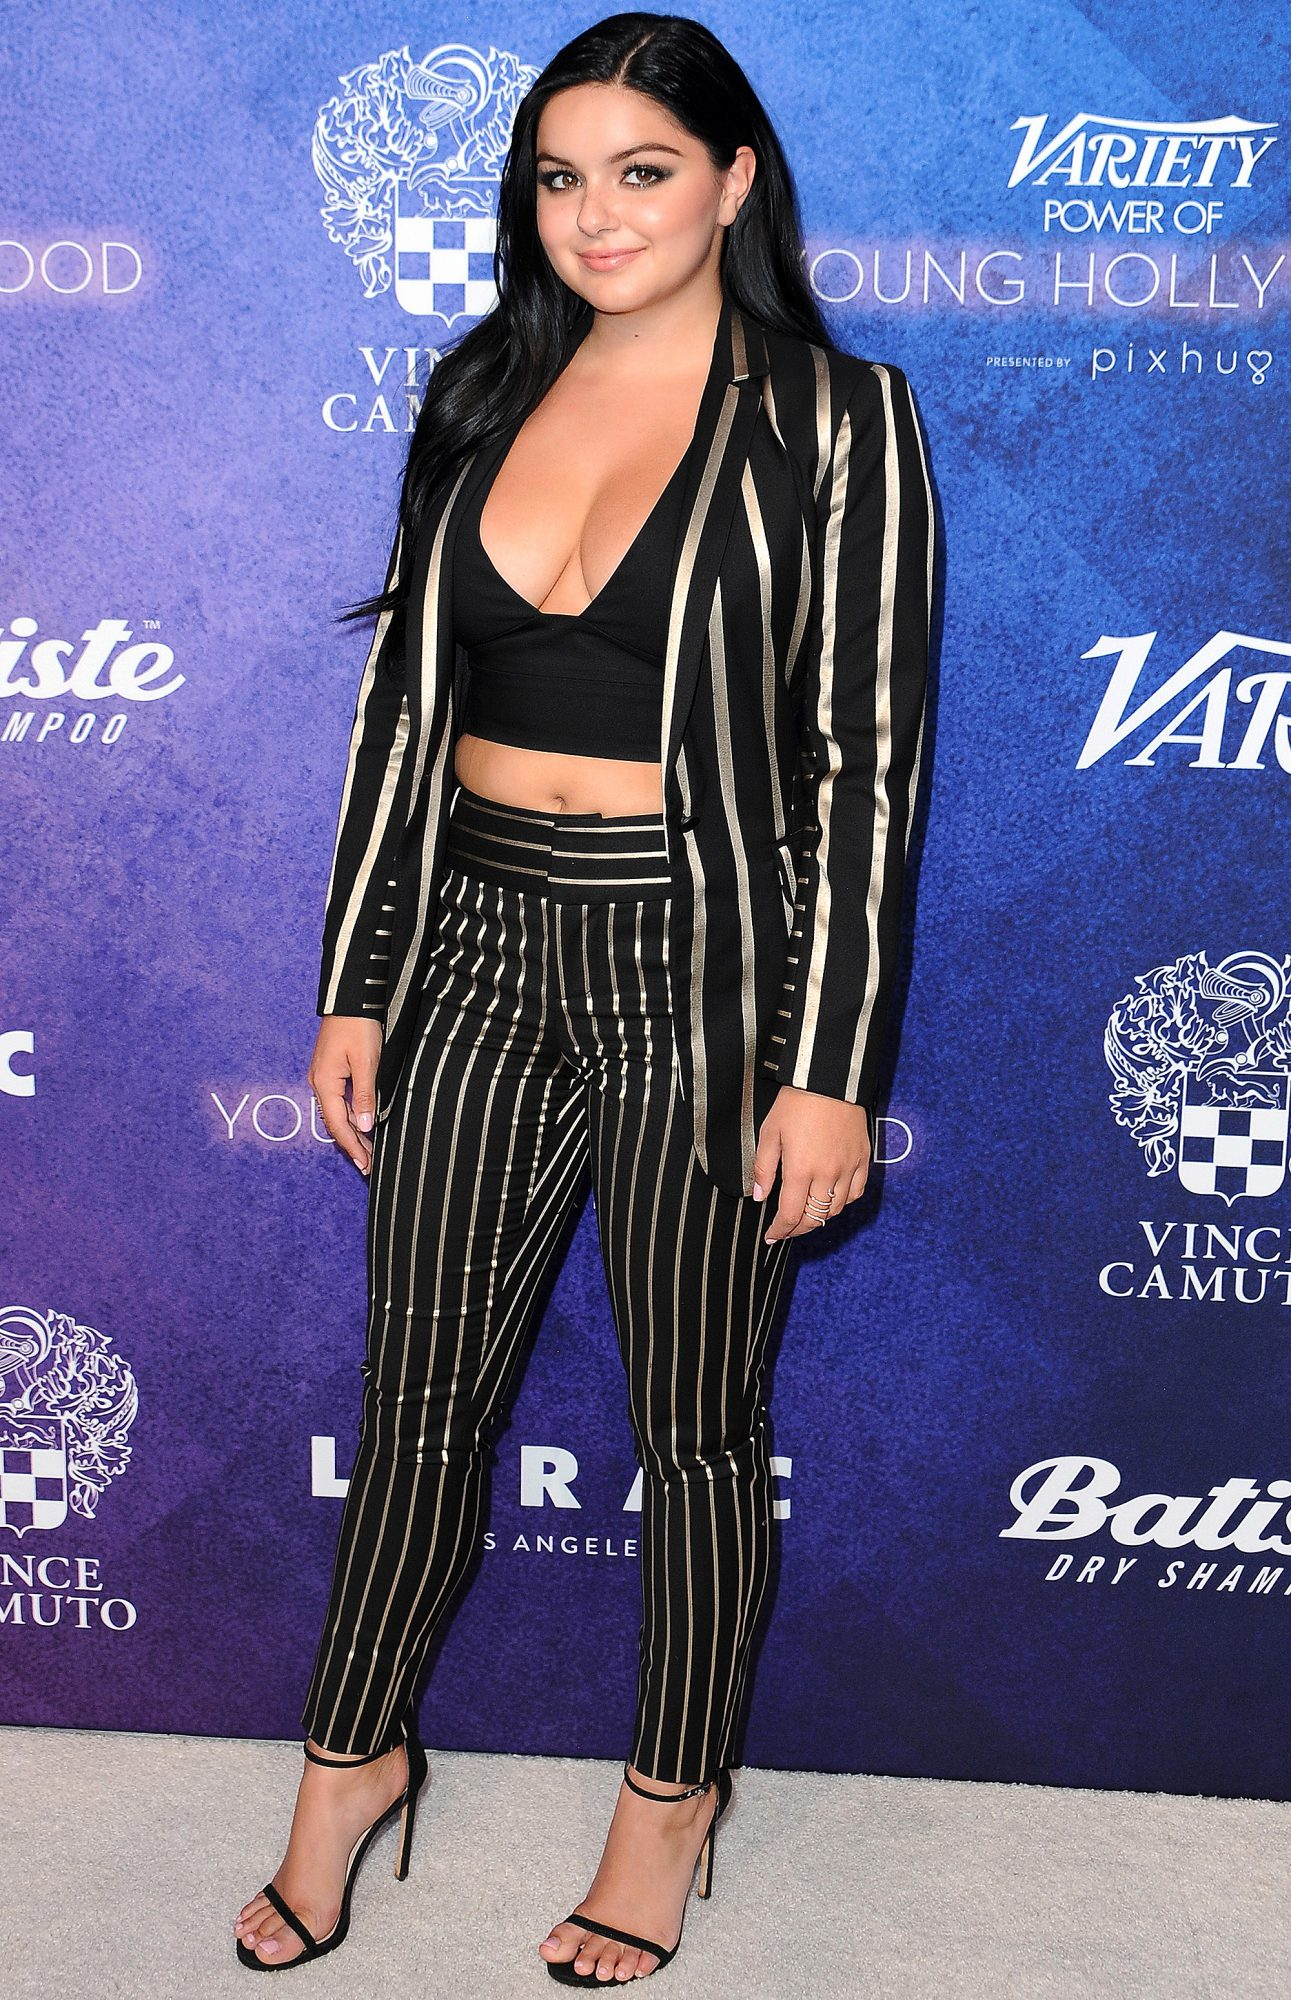 Variety's Power of Young Hollywood event in LA